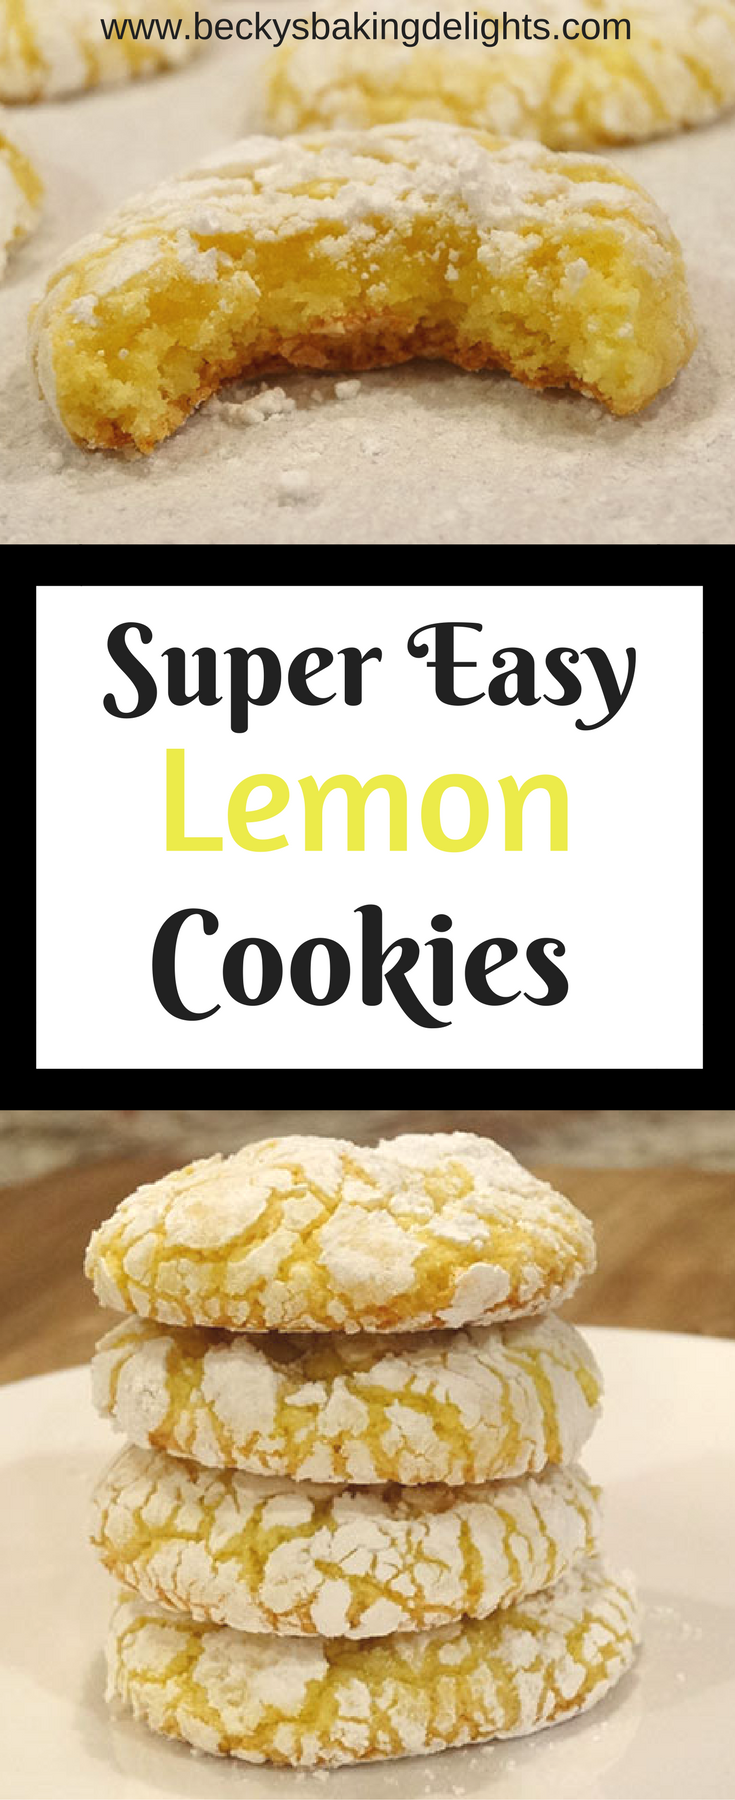 Super Easy Lemon Cookies images